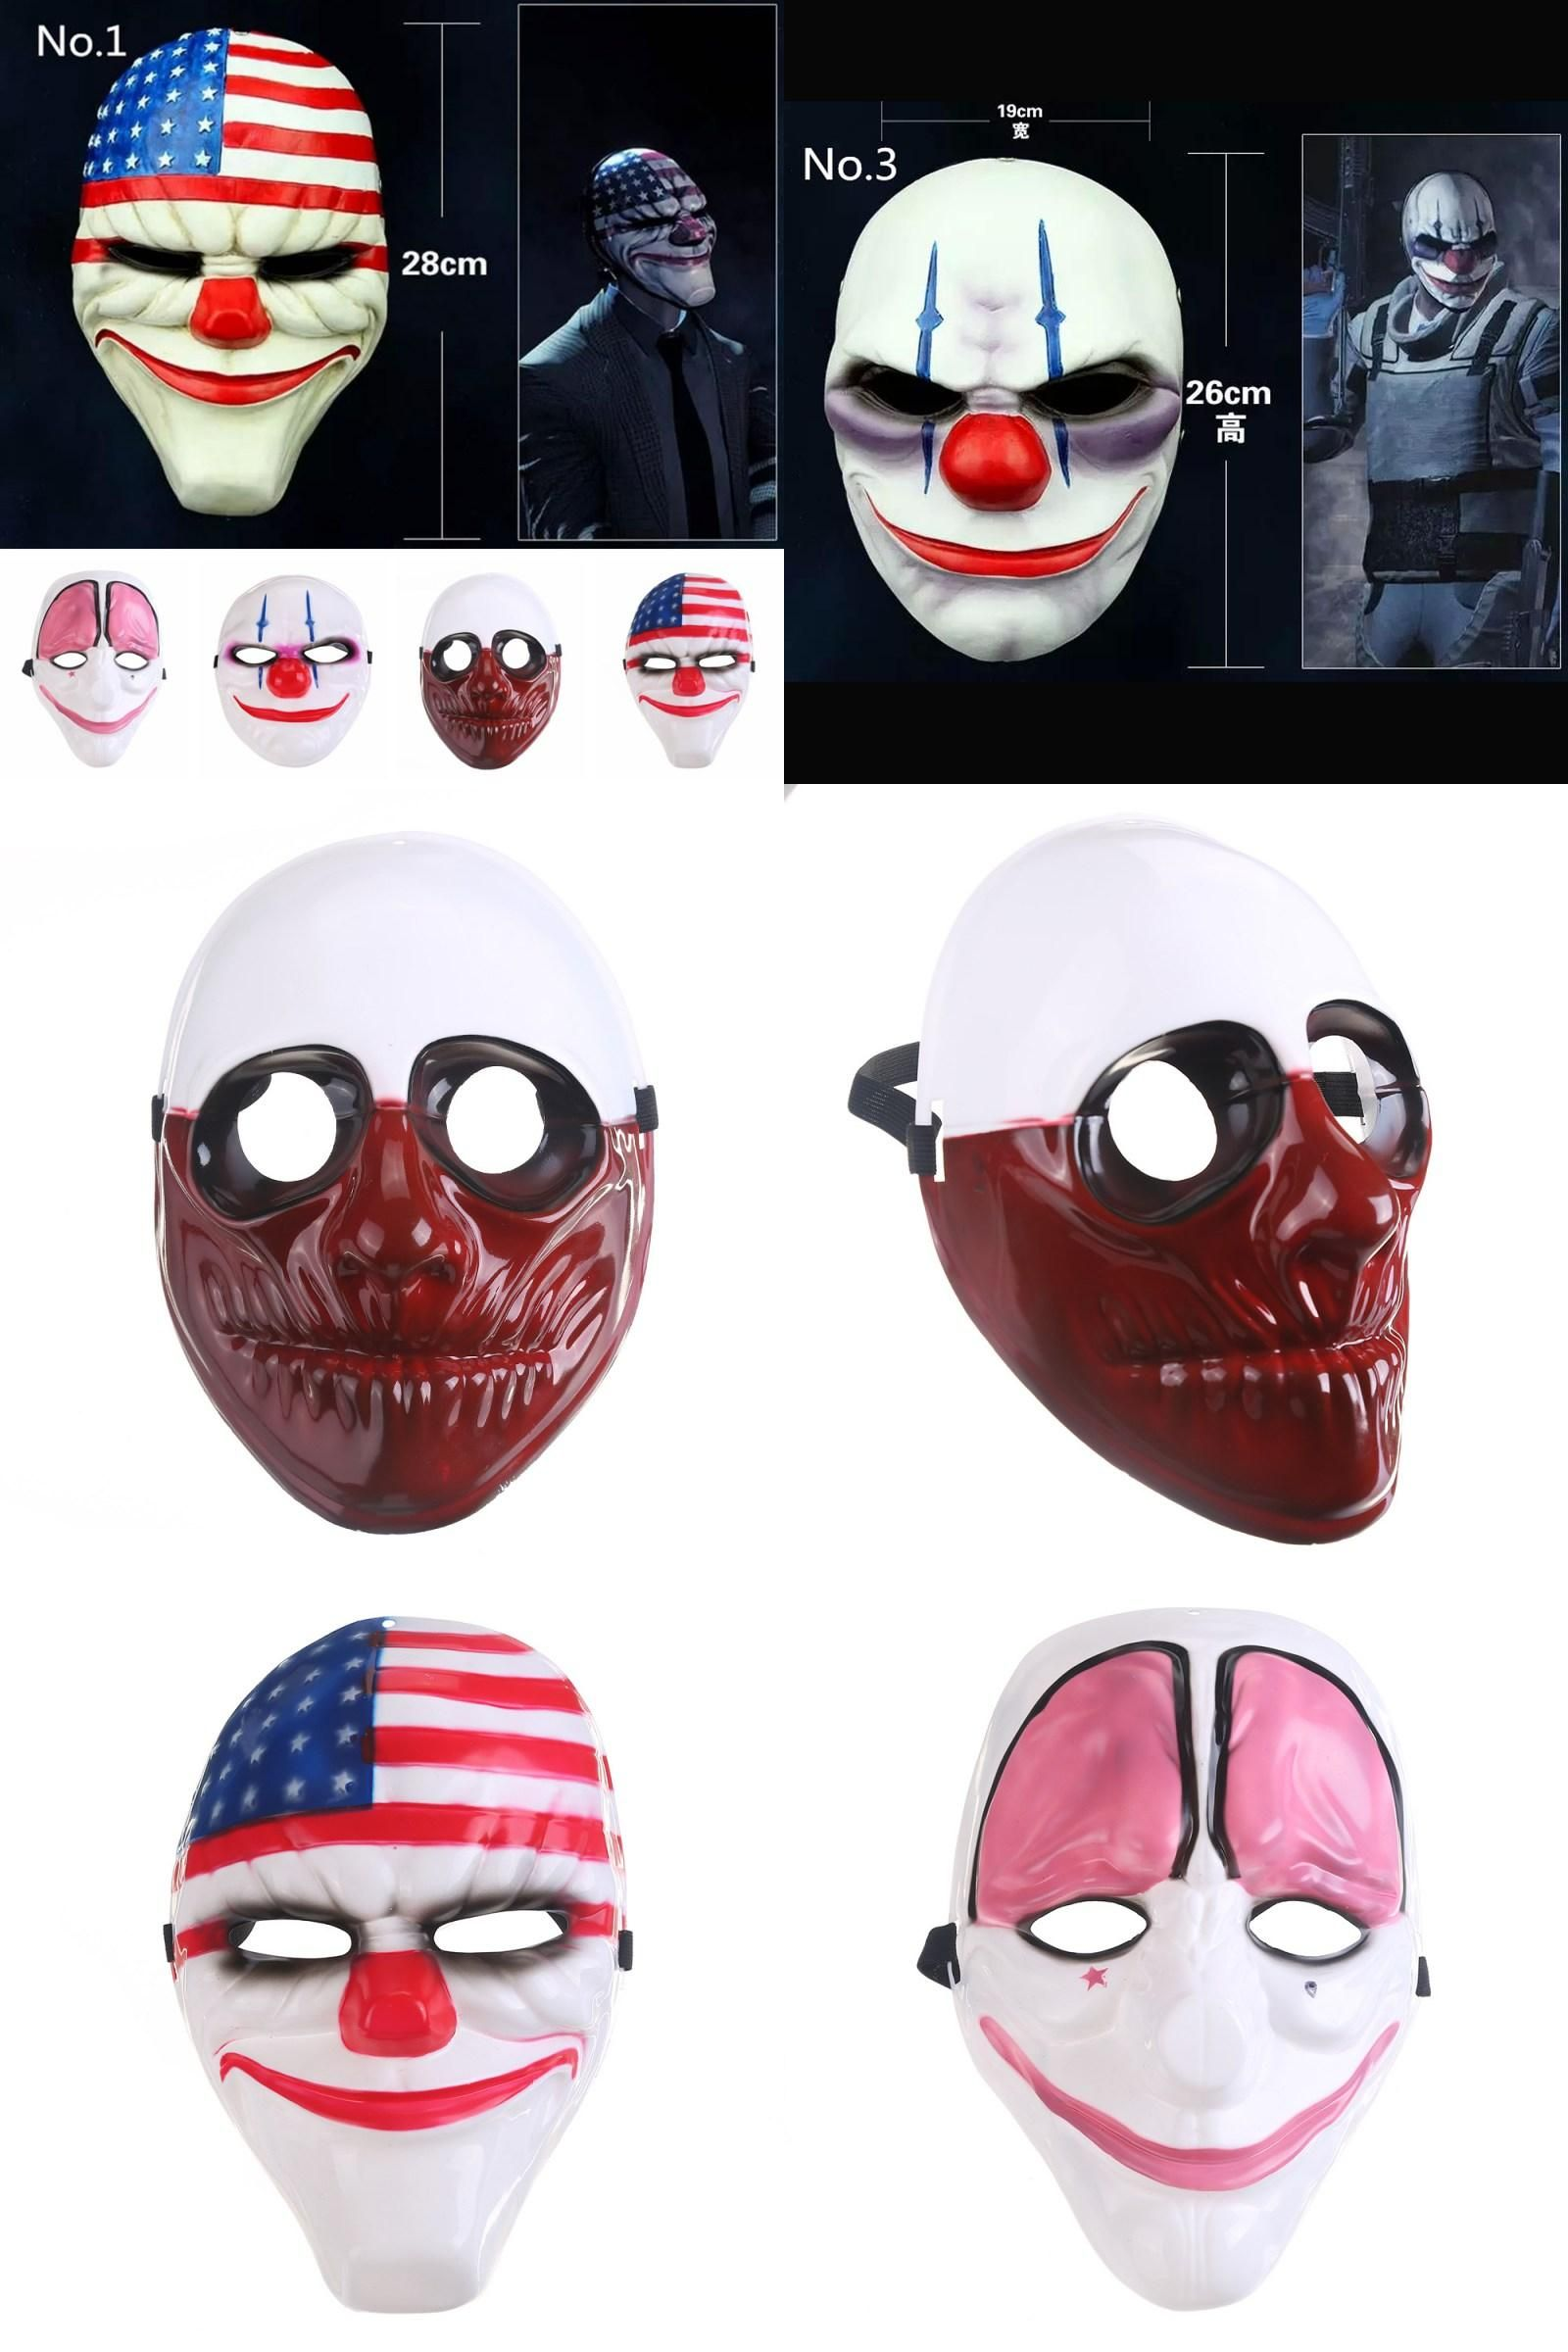 Visit to Buy] 2017 Party Mask MasquWholesale PVC Scary Clown Mask ...